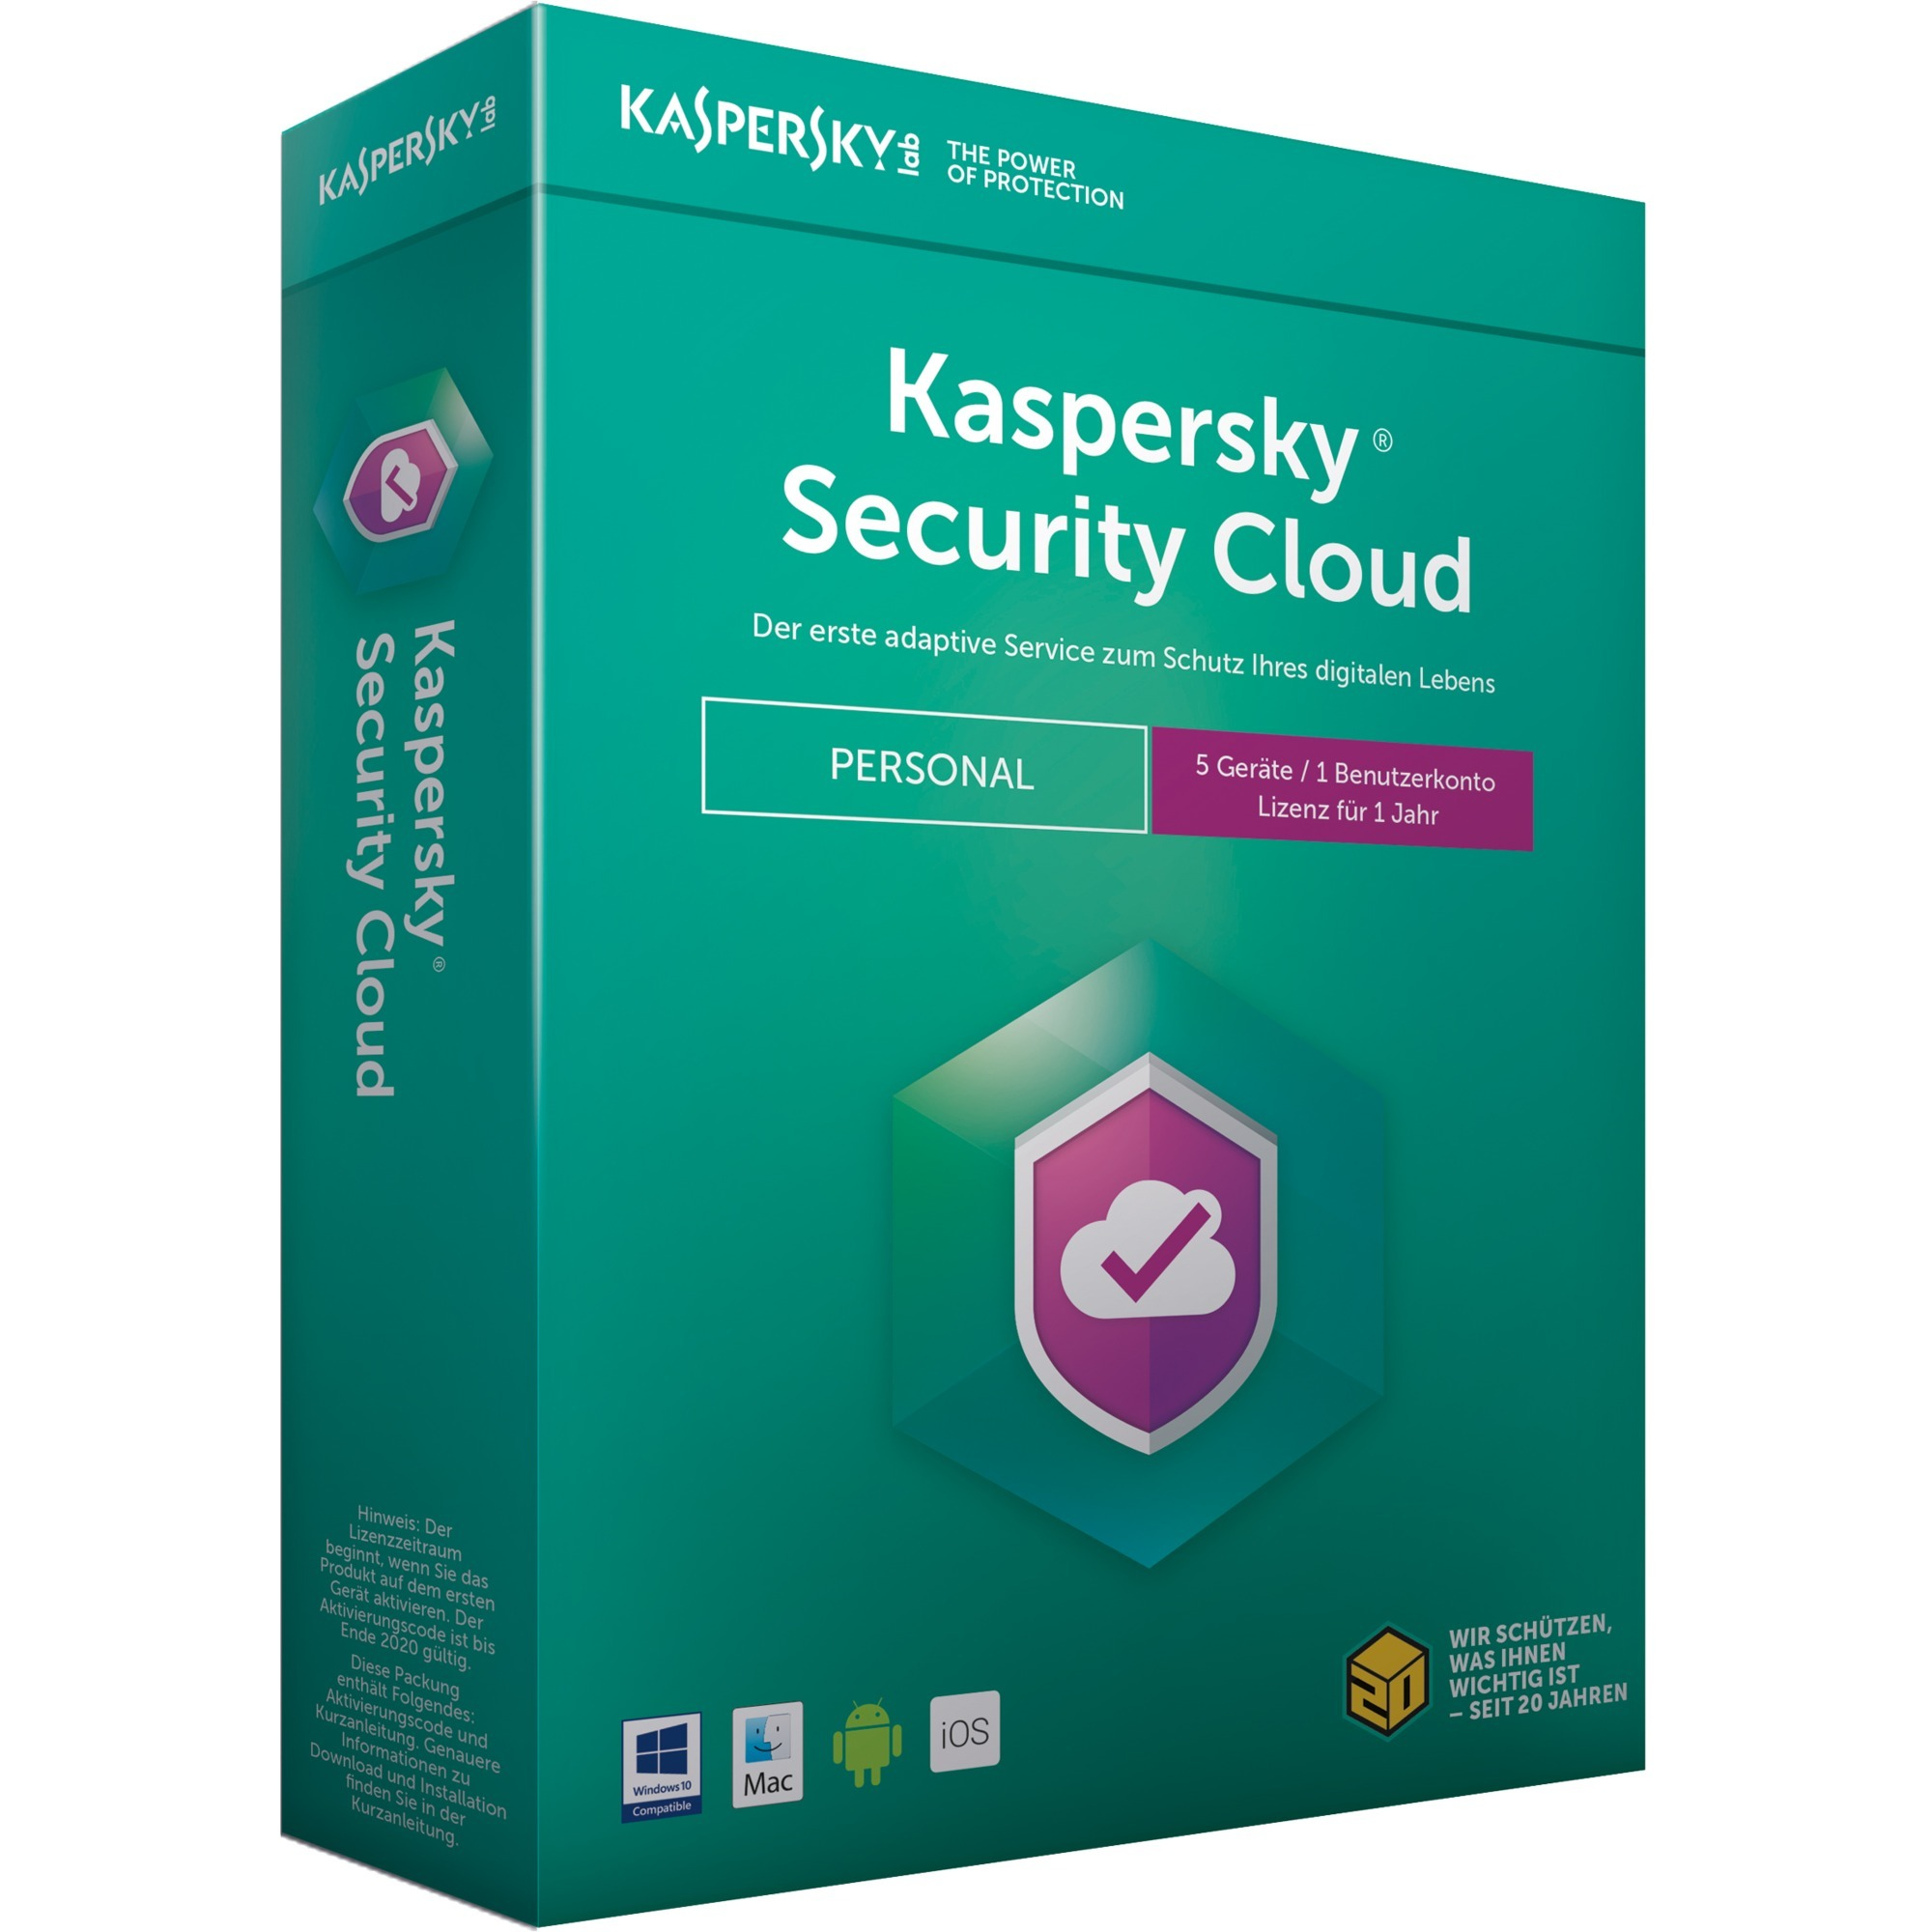 security-cloud-personal-edition-5brugere-1aar-full-license-tysk-software